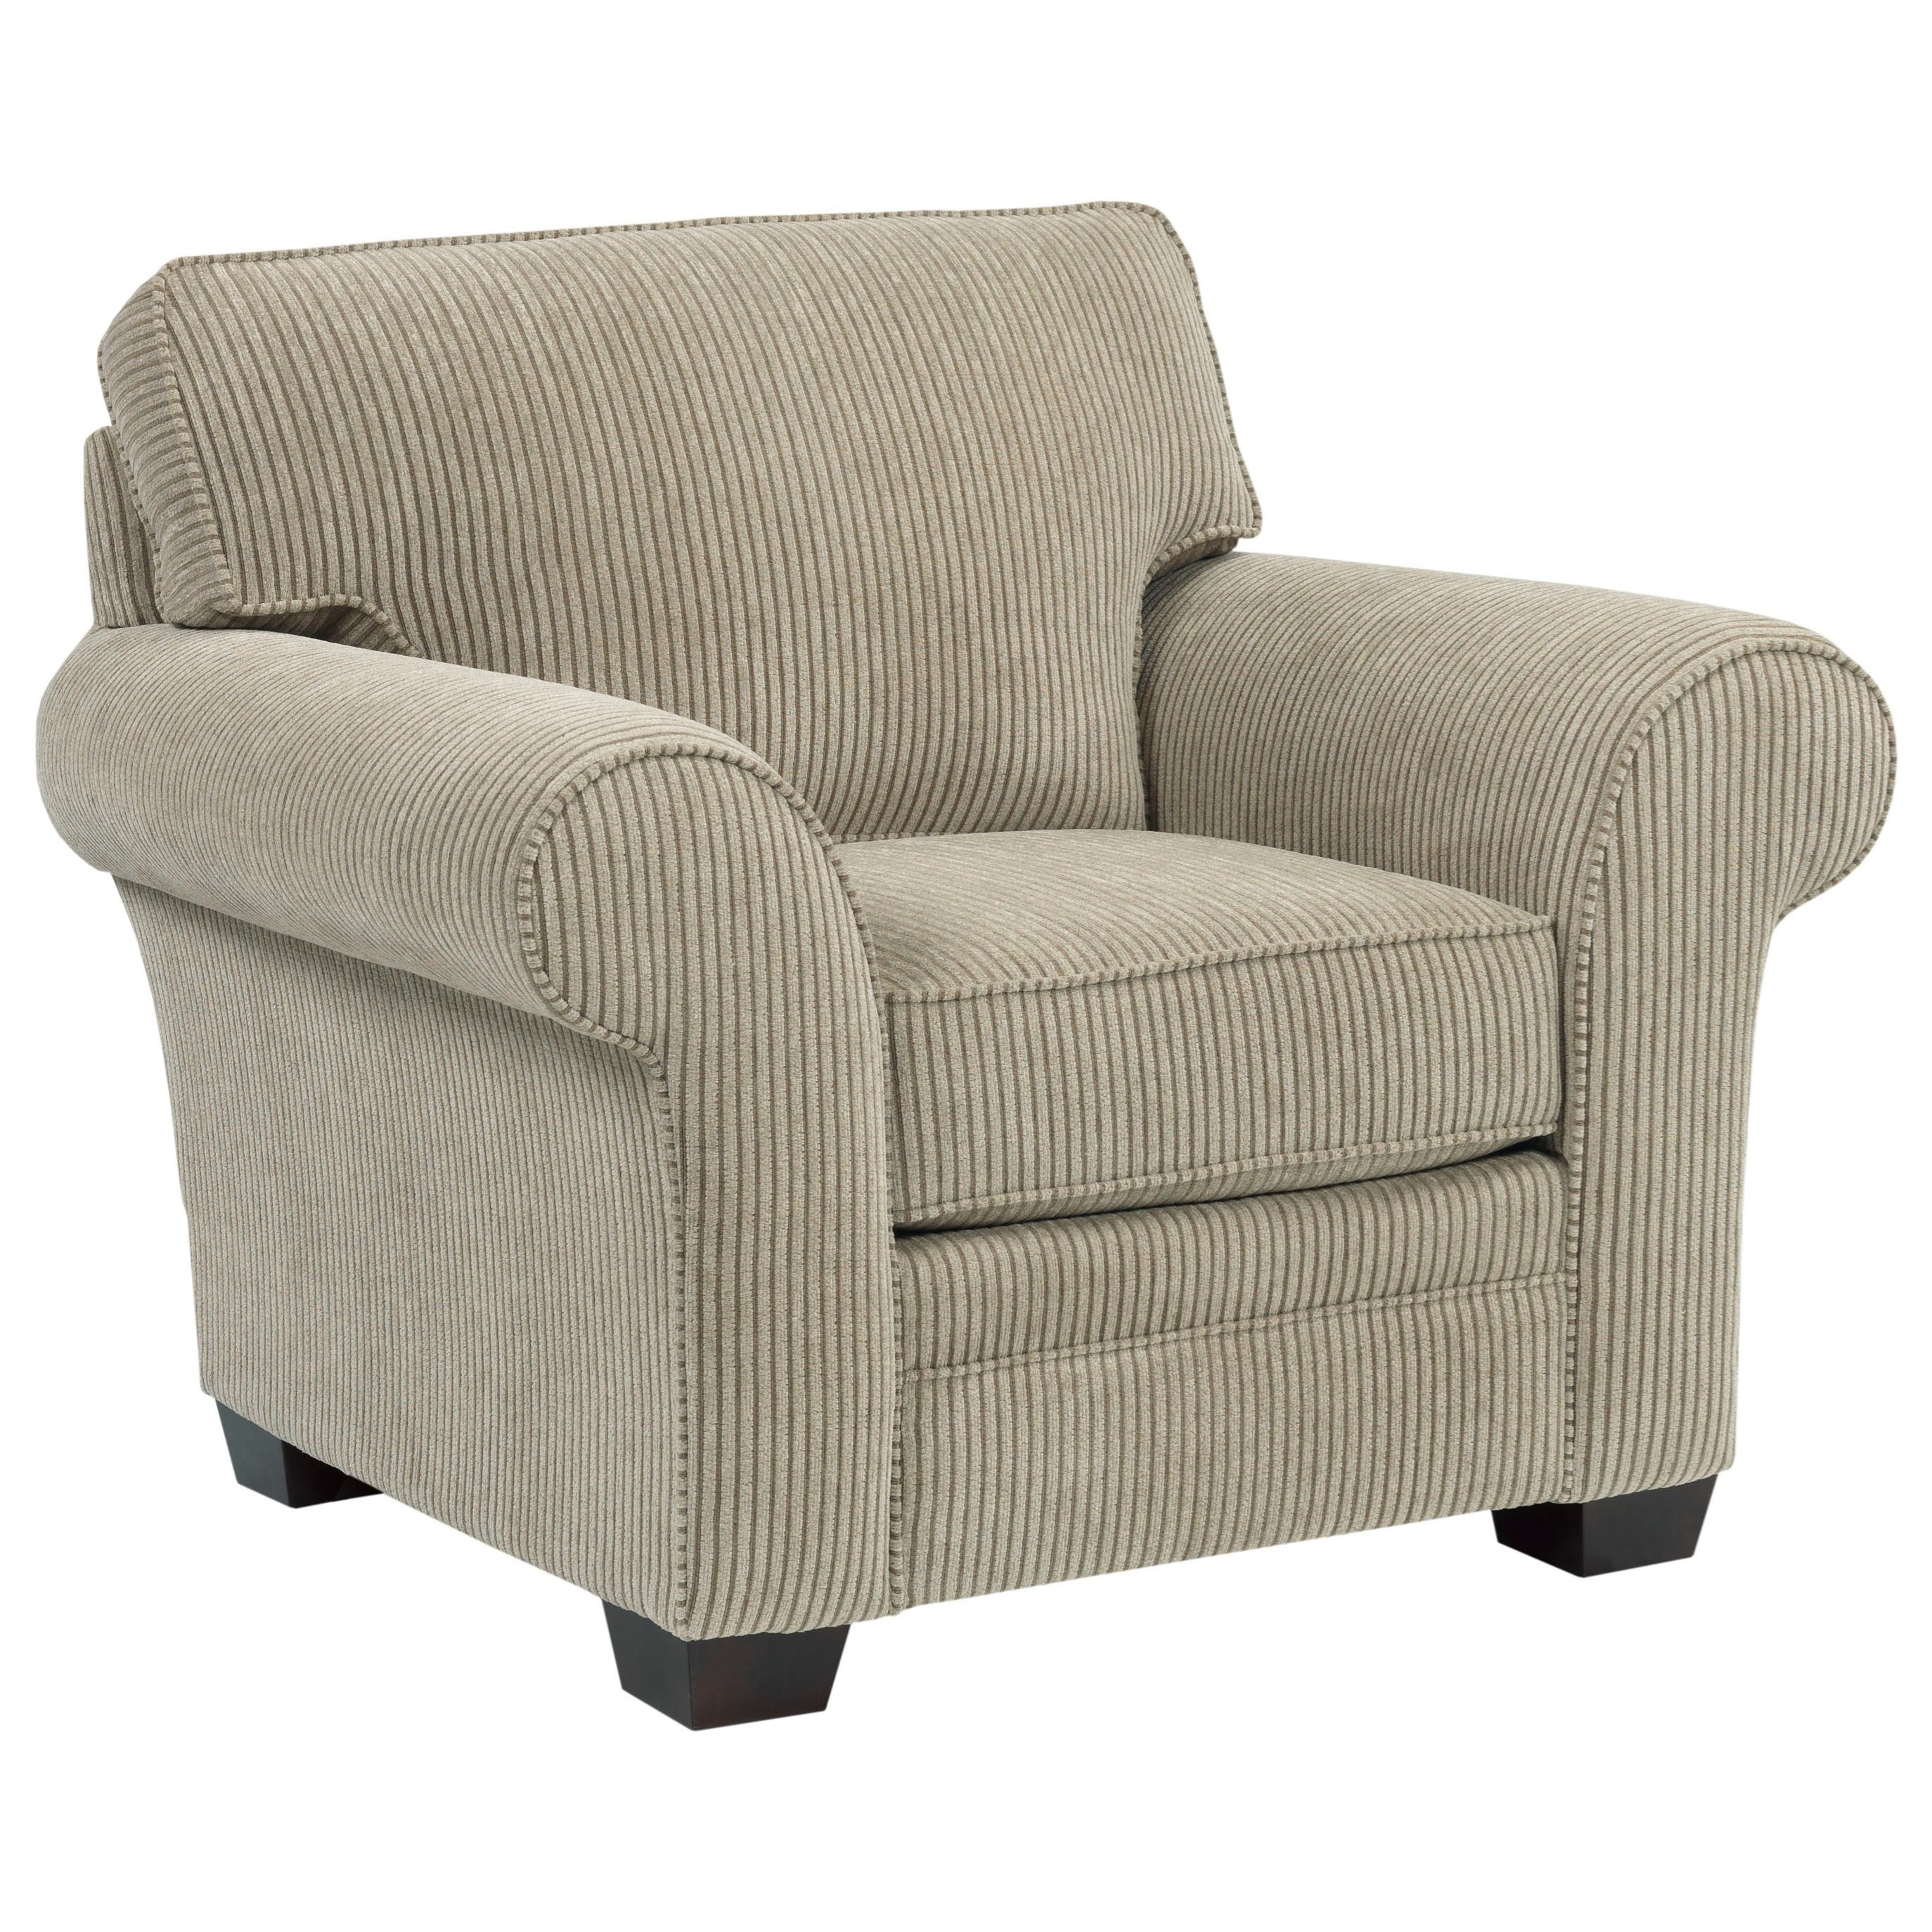 Broyhill Furniture Zachary Upholstered Chair - Item Number: 7902-0-8785-93